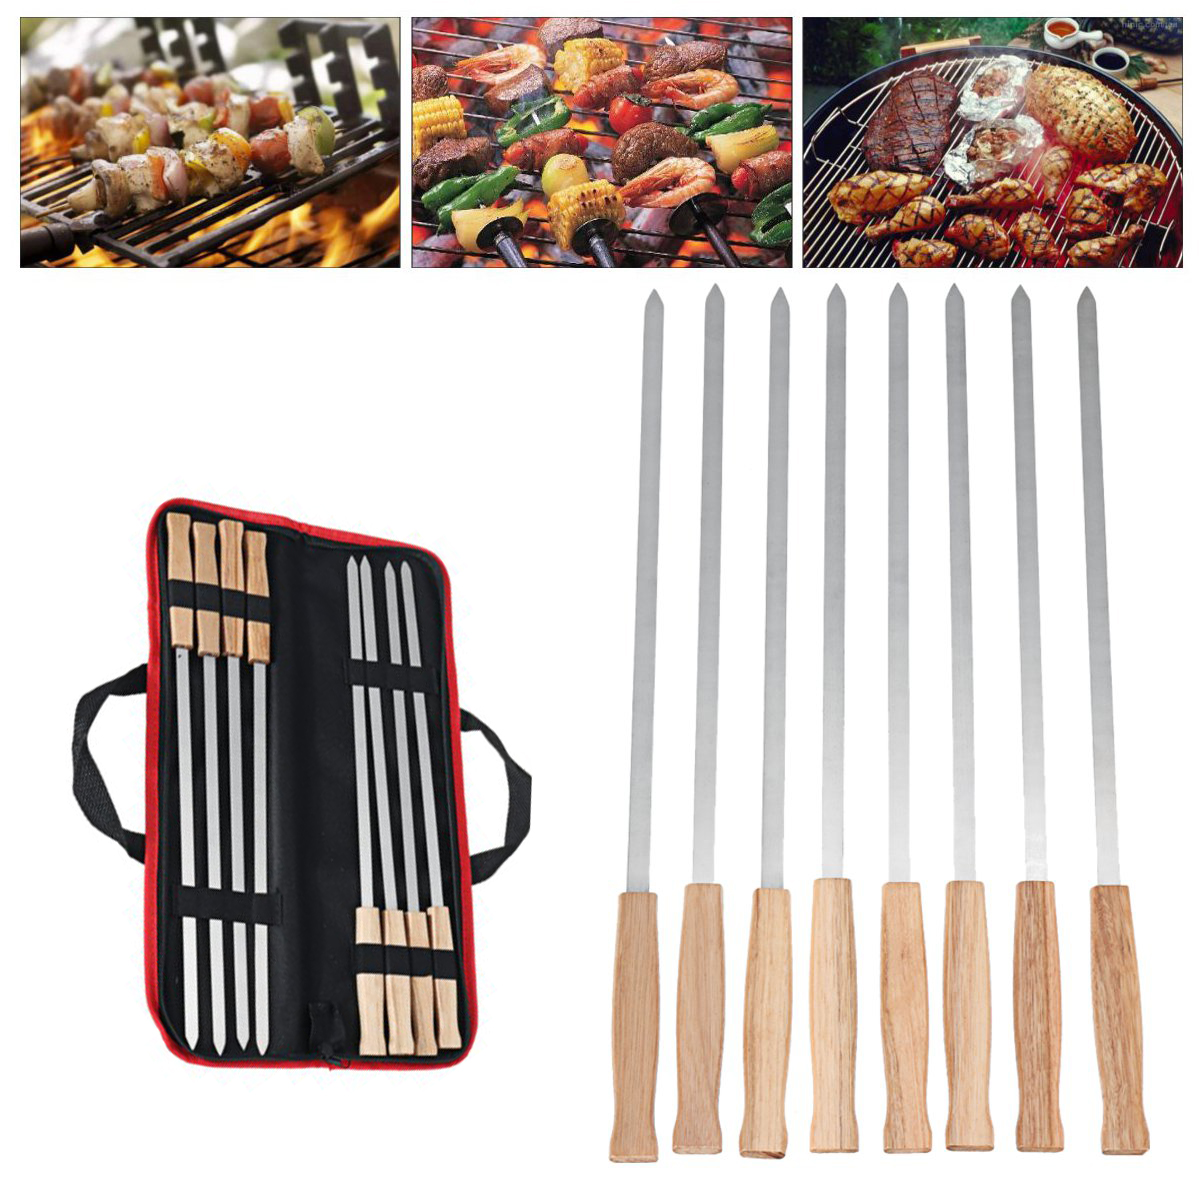 6Pcs Kebab BBQ Stainless Steel Skewers with Wooden Handles Roasting Pin Barbecue Fork Wooden Handle for Picnic